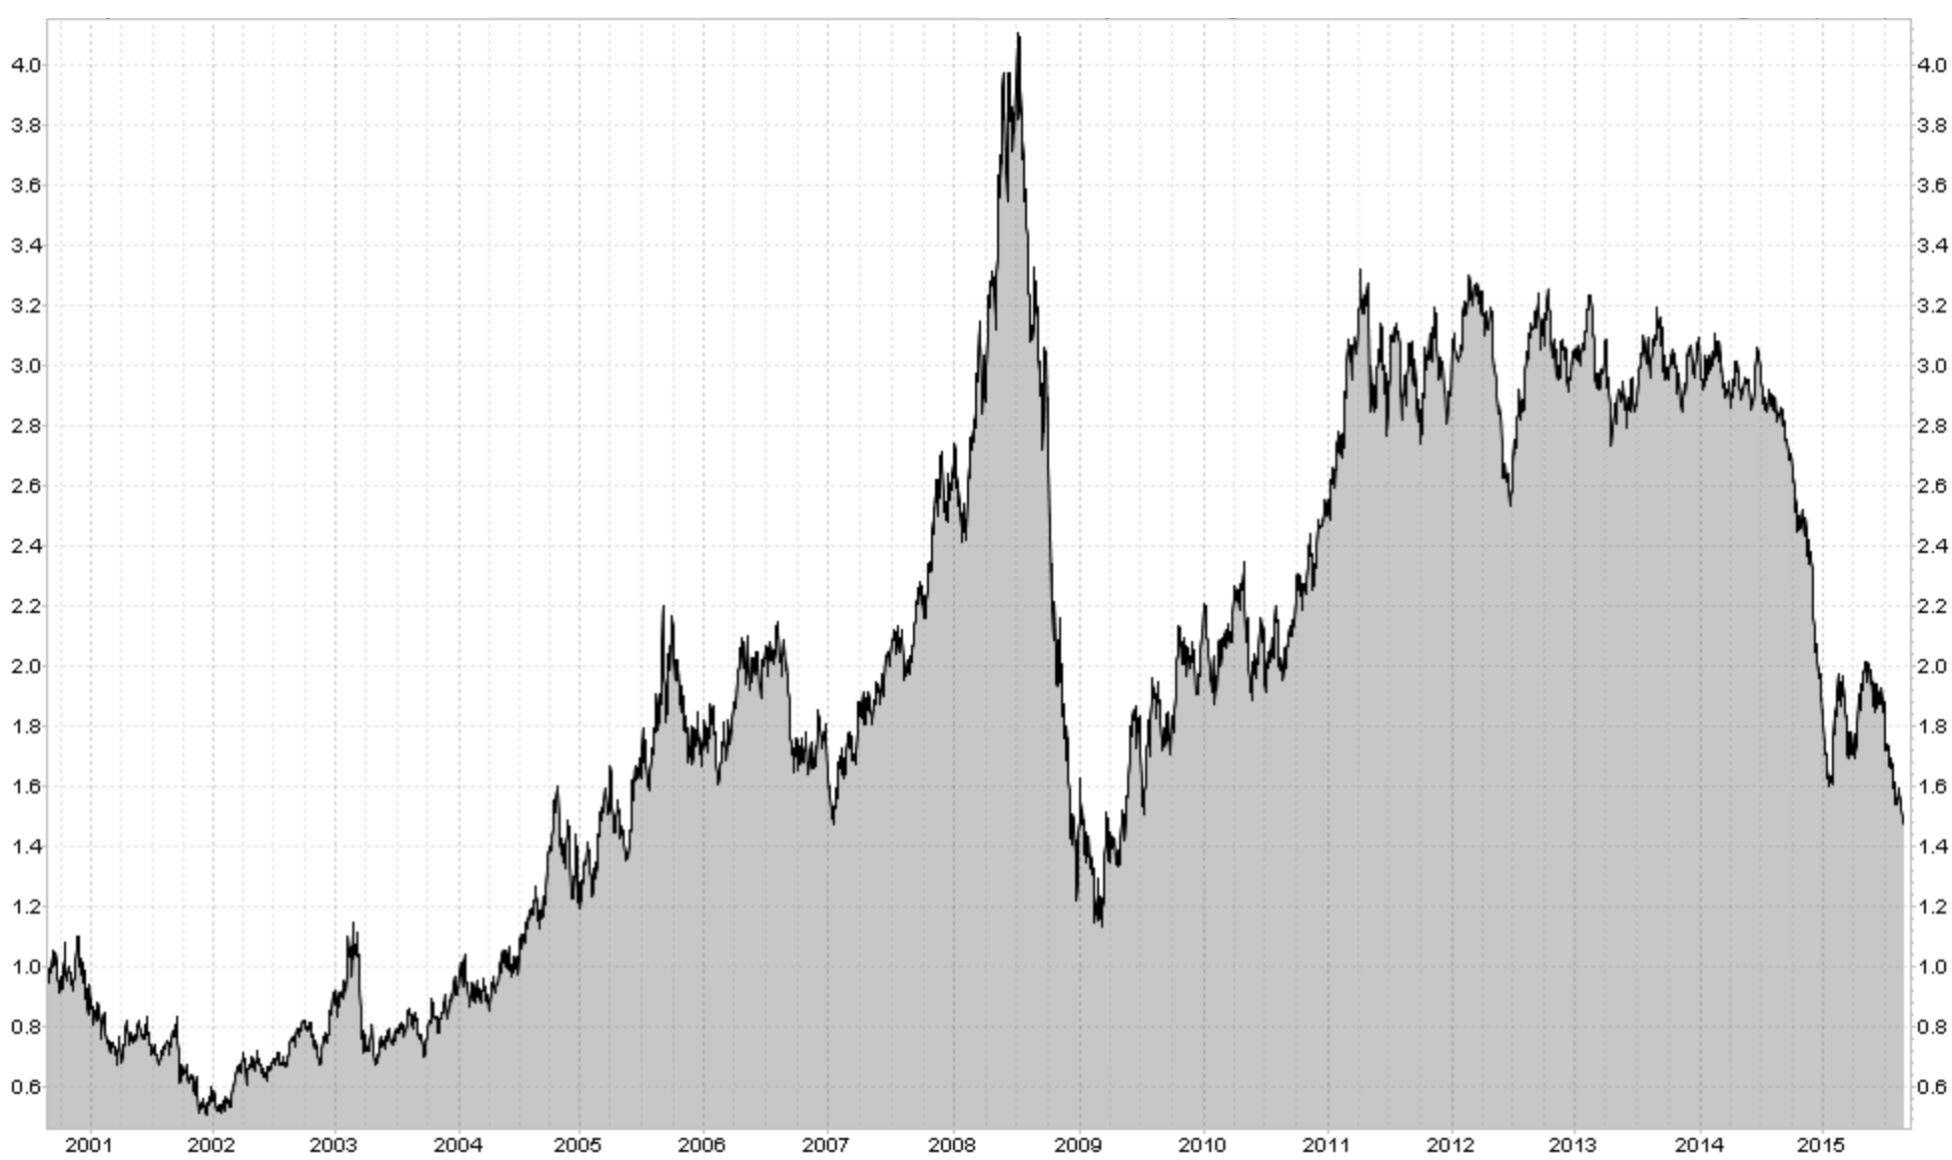 HEATING OIL (US CENTS/GALLON)